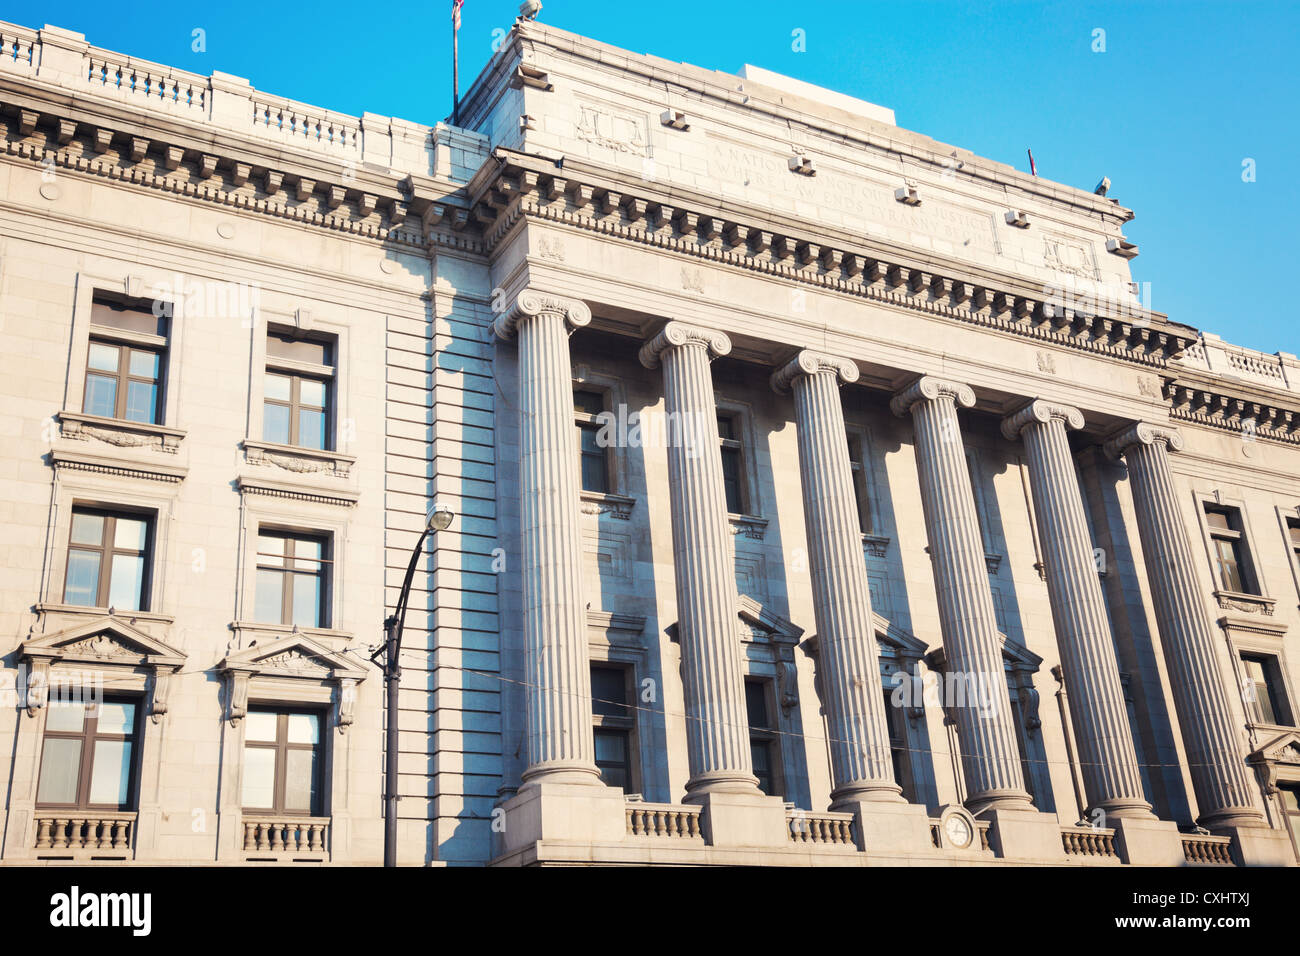 Old courthouse in the center of Youngstown - Stock Image